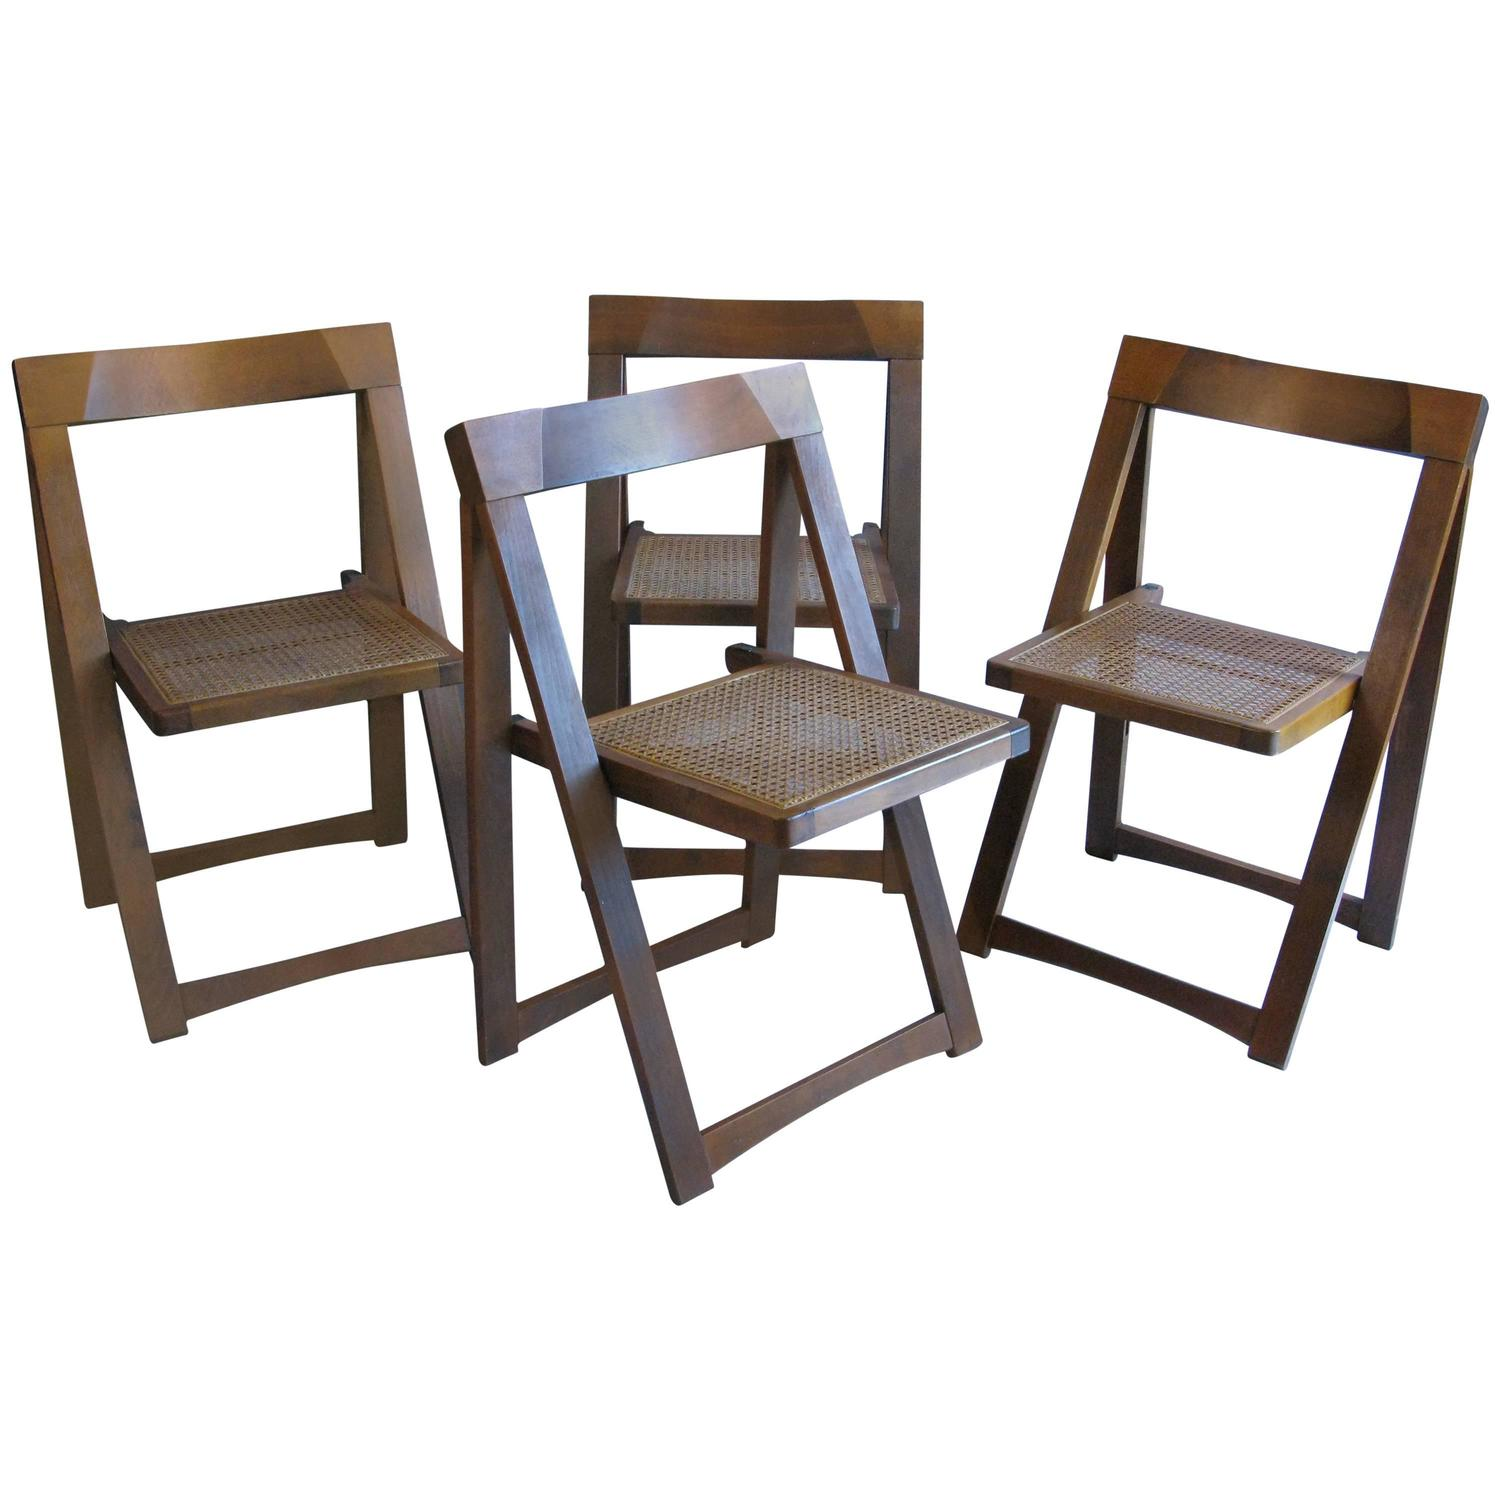 Set of Four Mid Century Walnut Folding Chairs with Caned Seats at 1stdibs